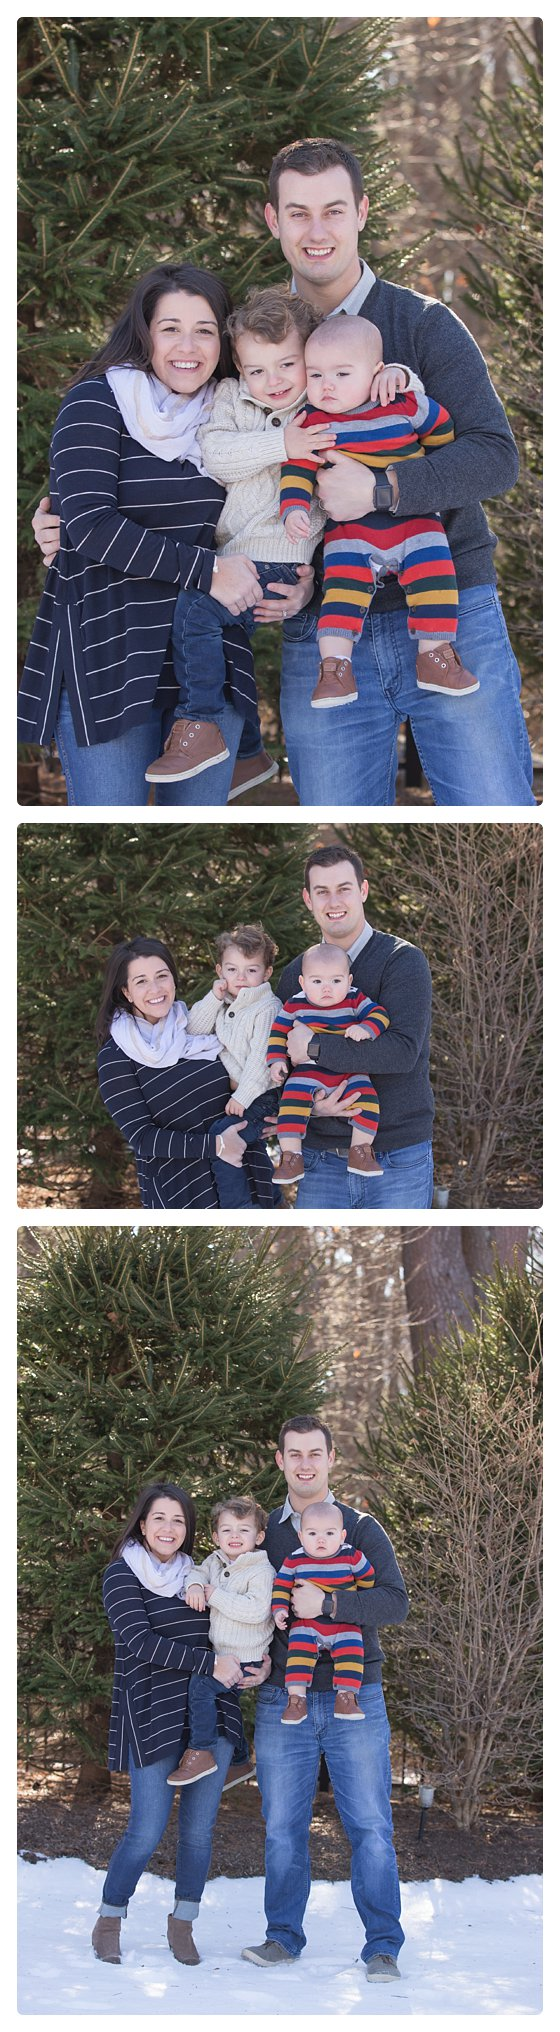 Family photos outside in Cohassett Massachusetts